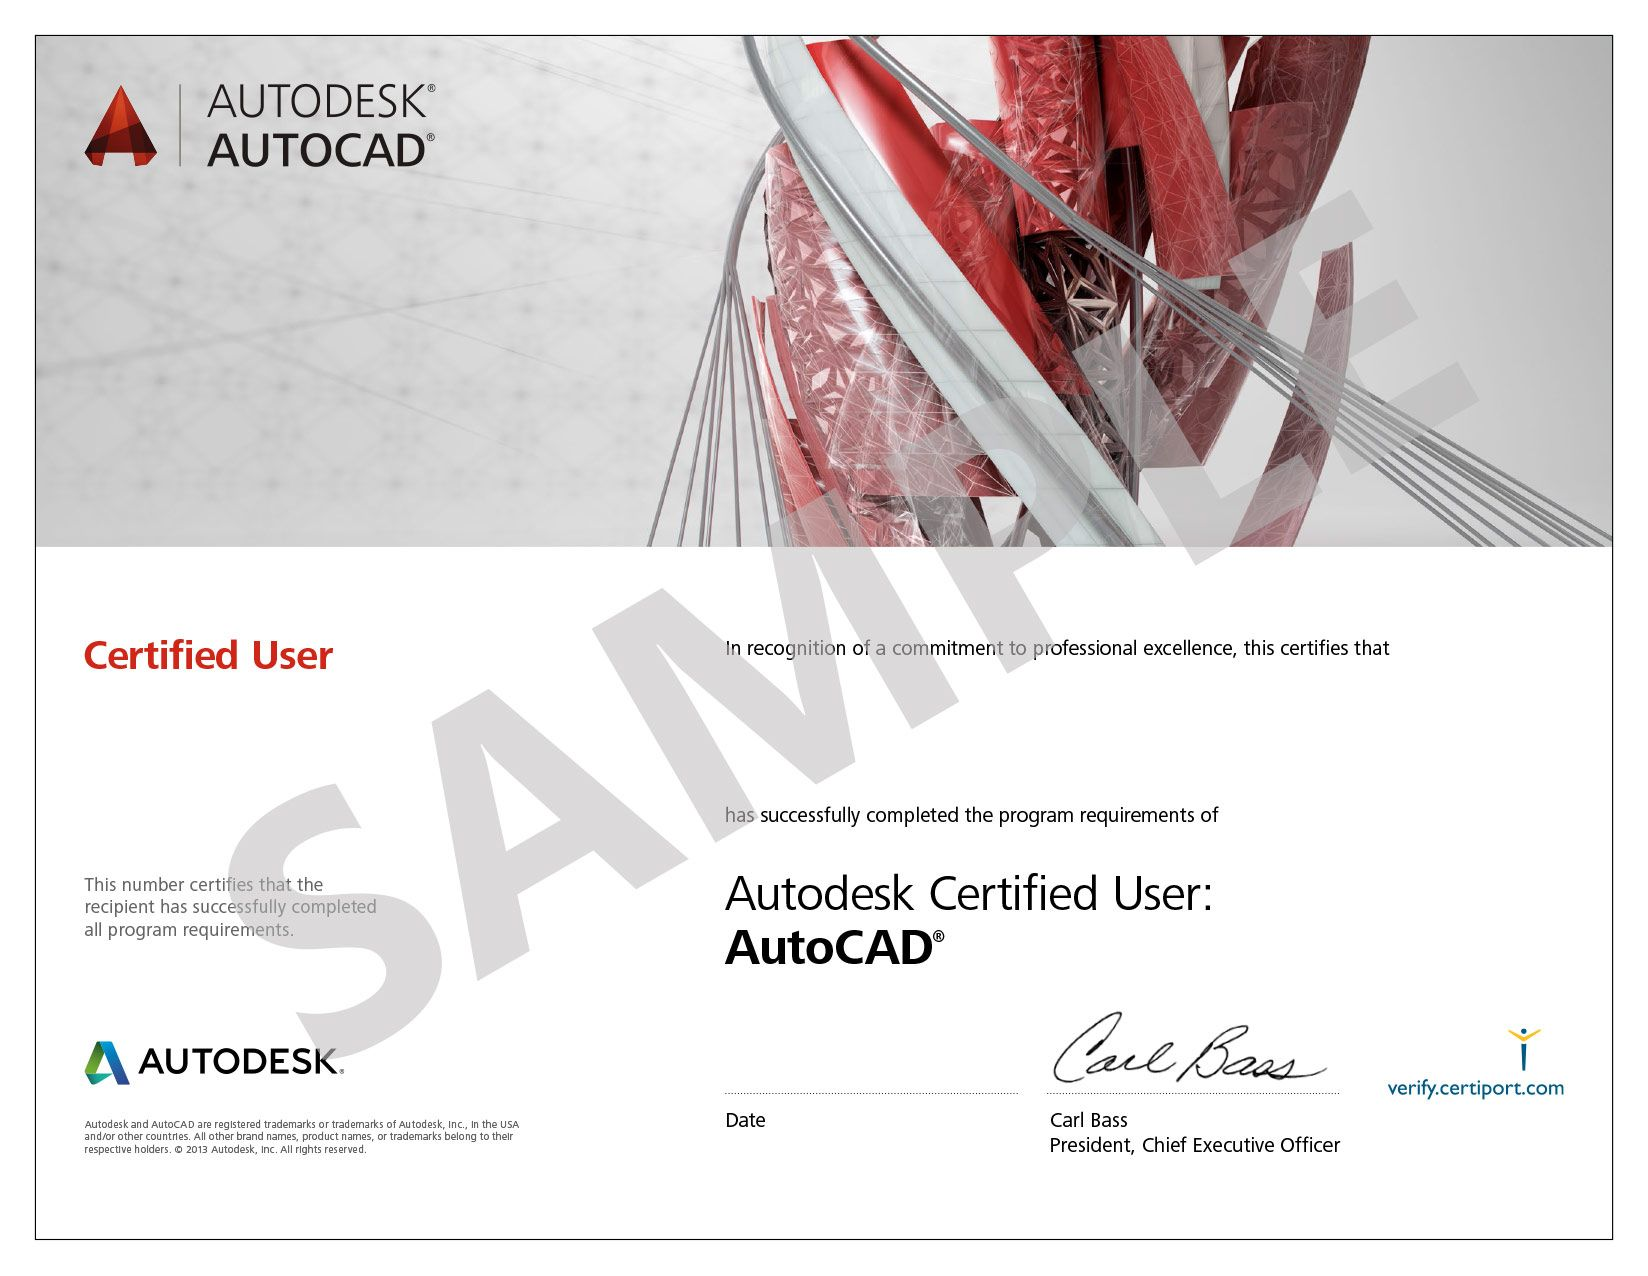 Get International Certification From Autodesk In Autocad Learn From Professionals With Industrial Experience Of 3 Years Batche Autocad Certificate Autodesk